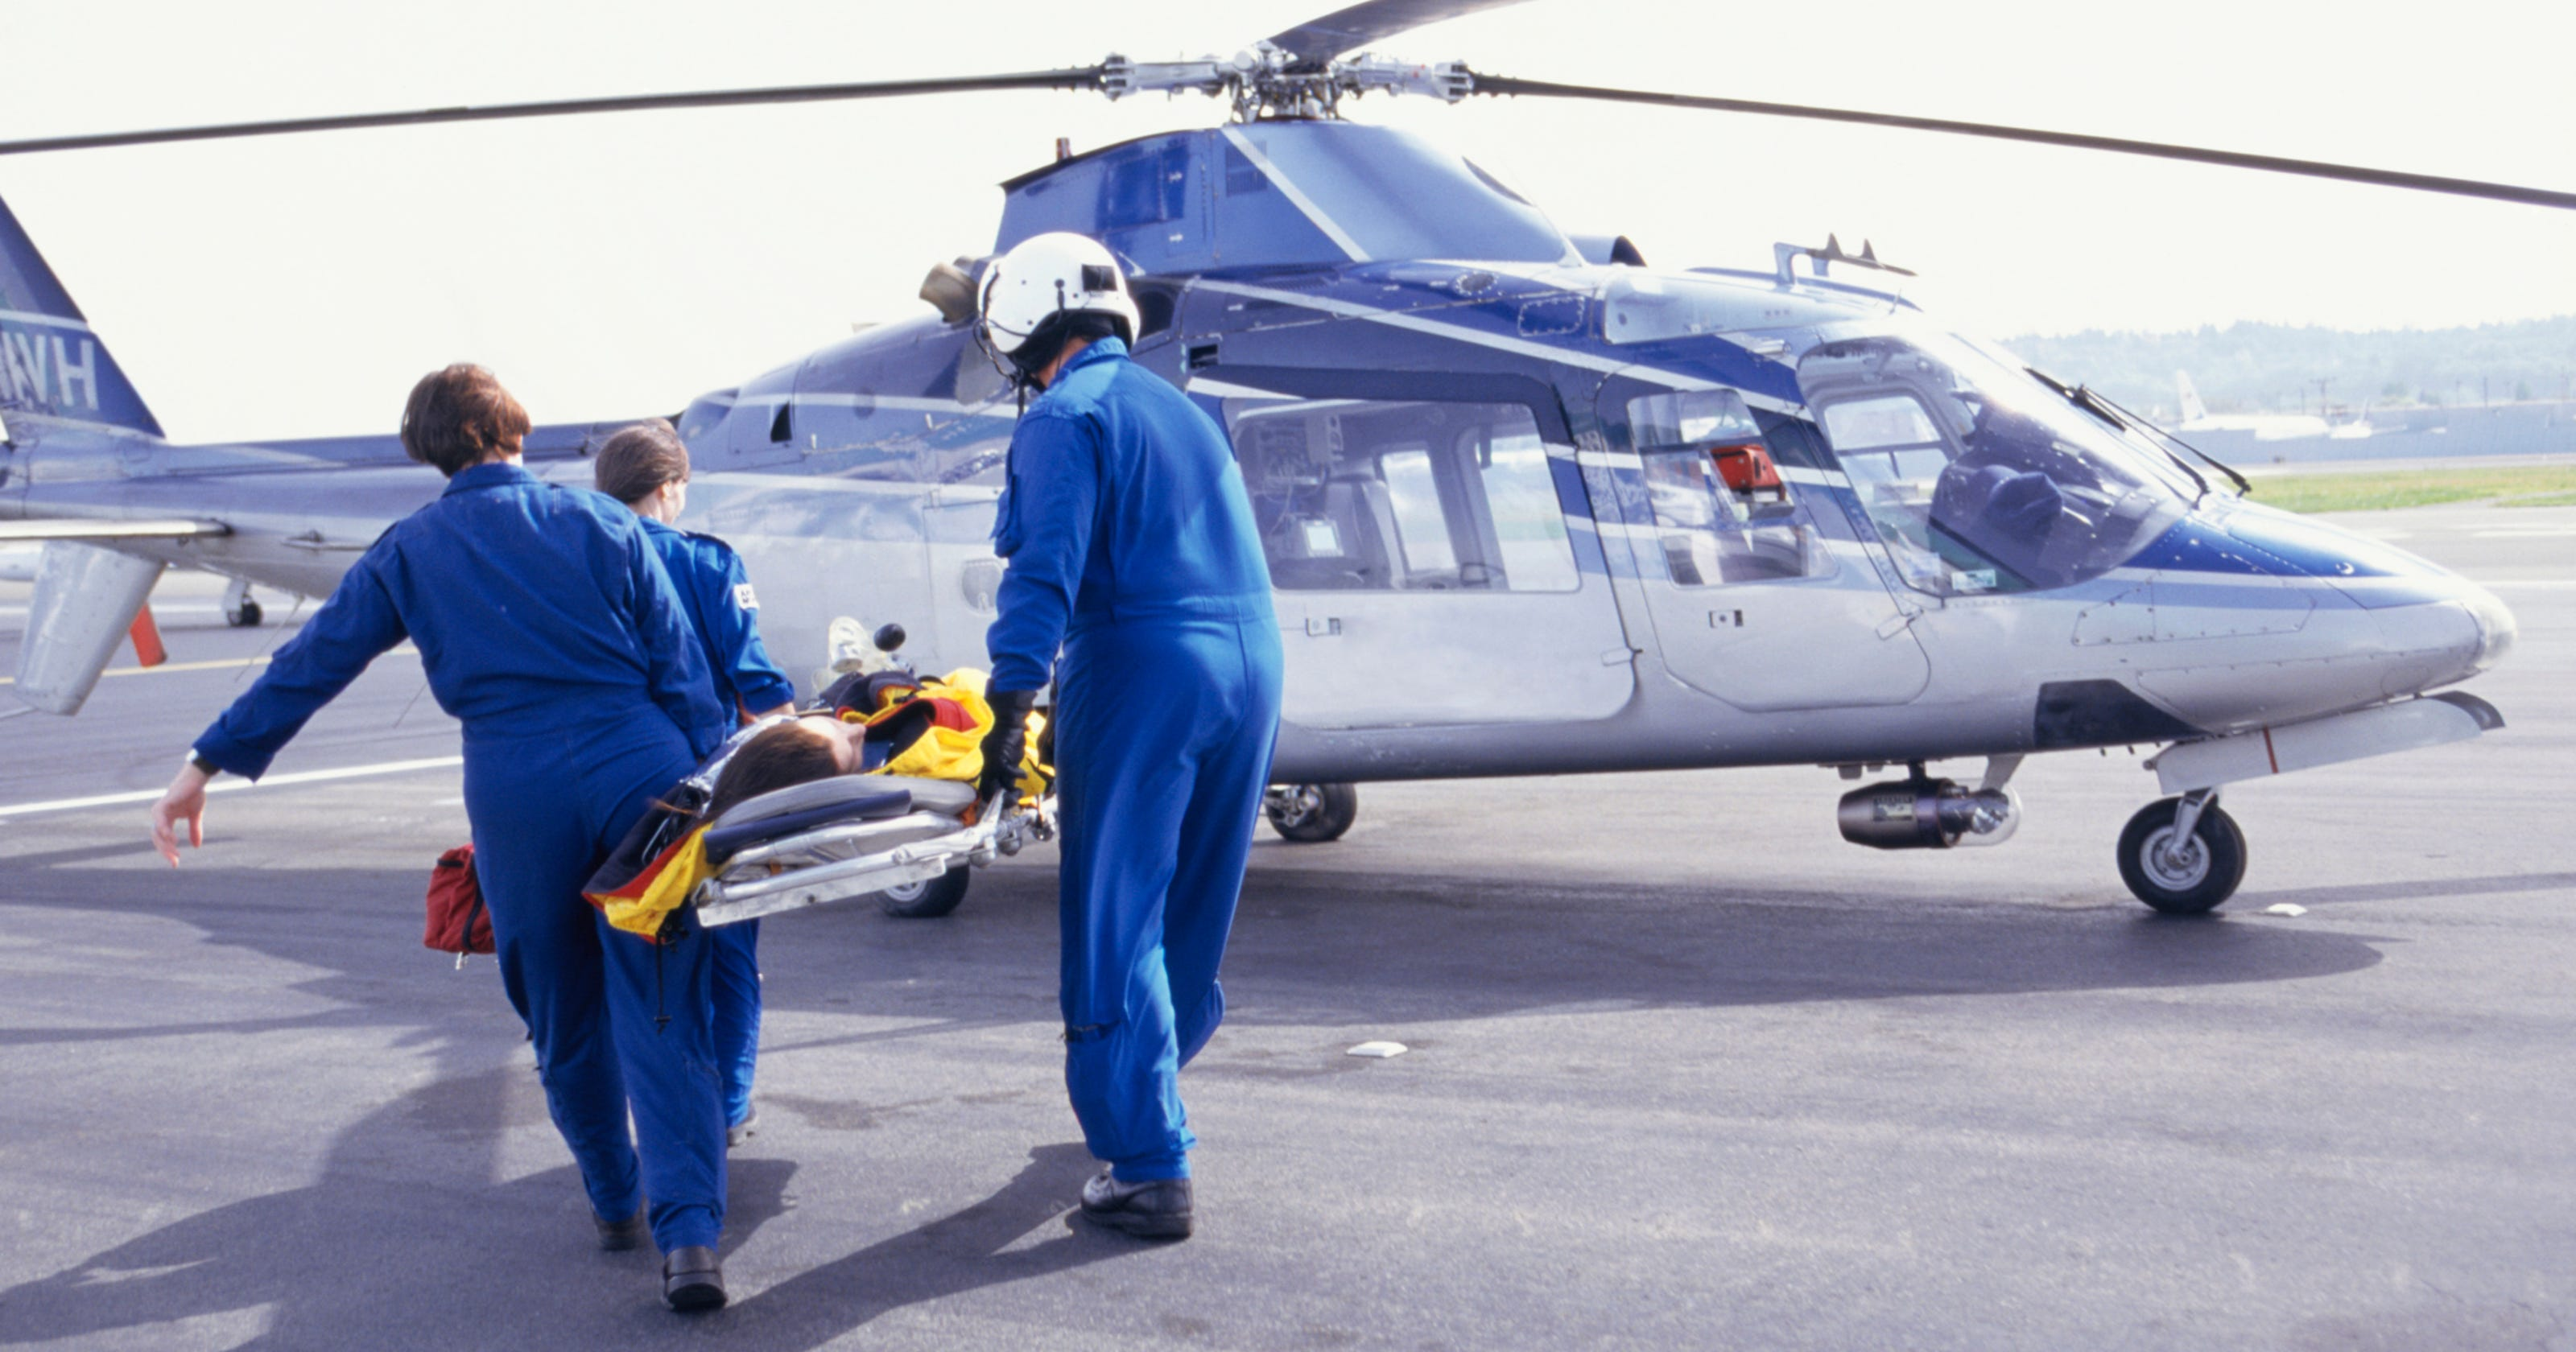 Five myths about medical evacuations